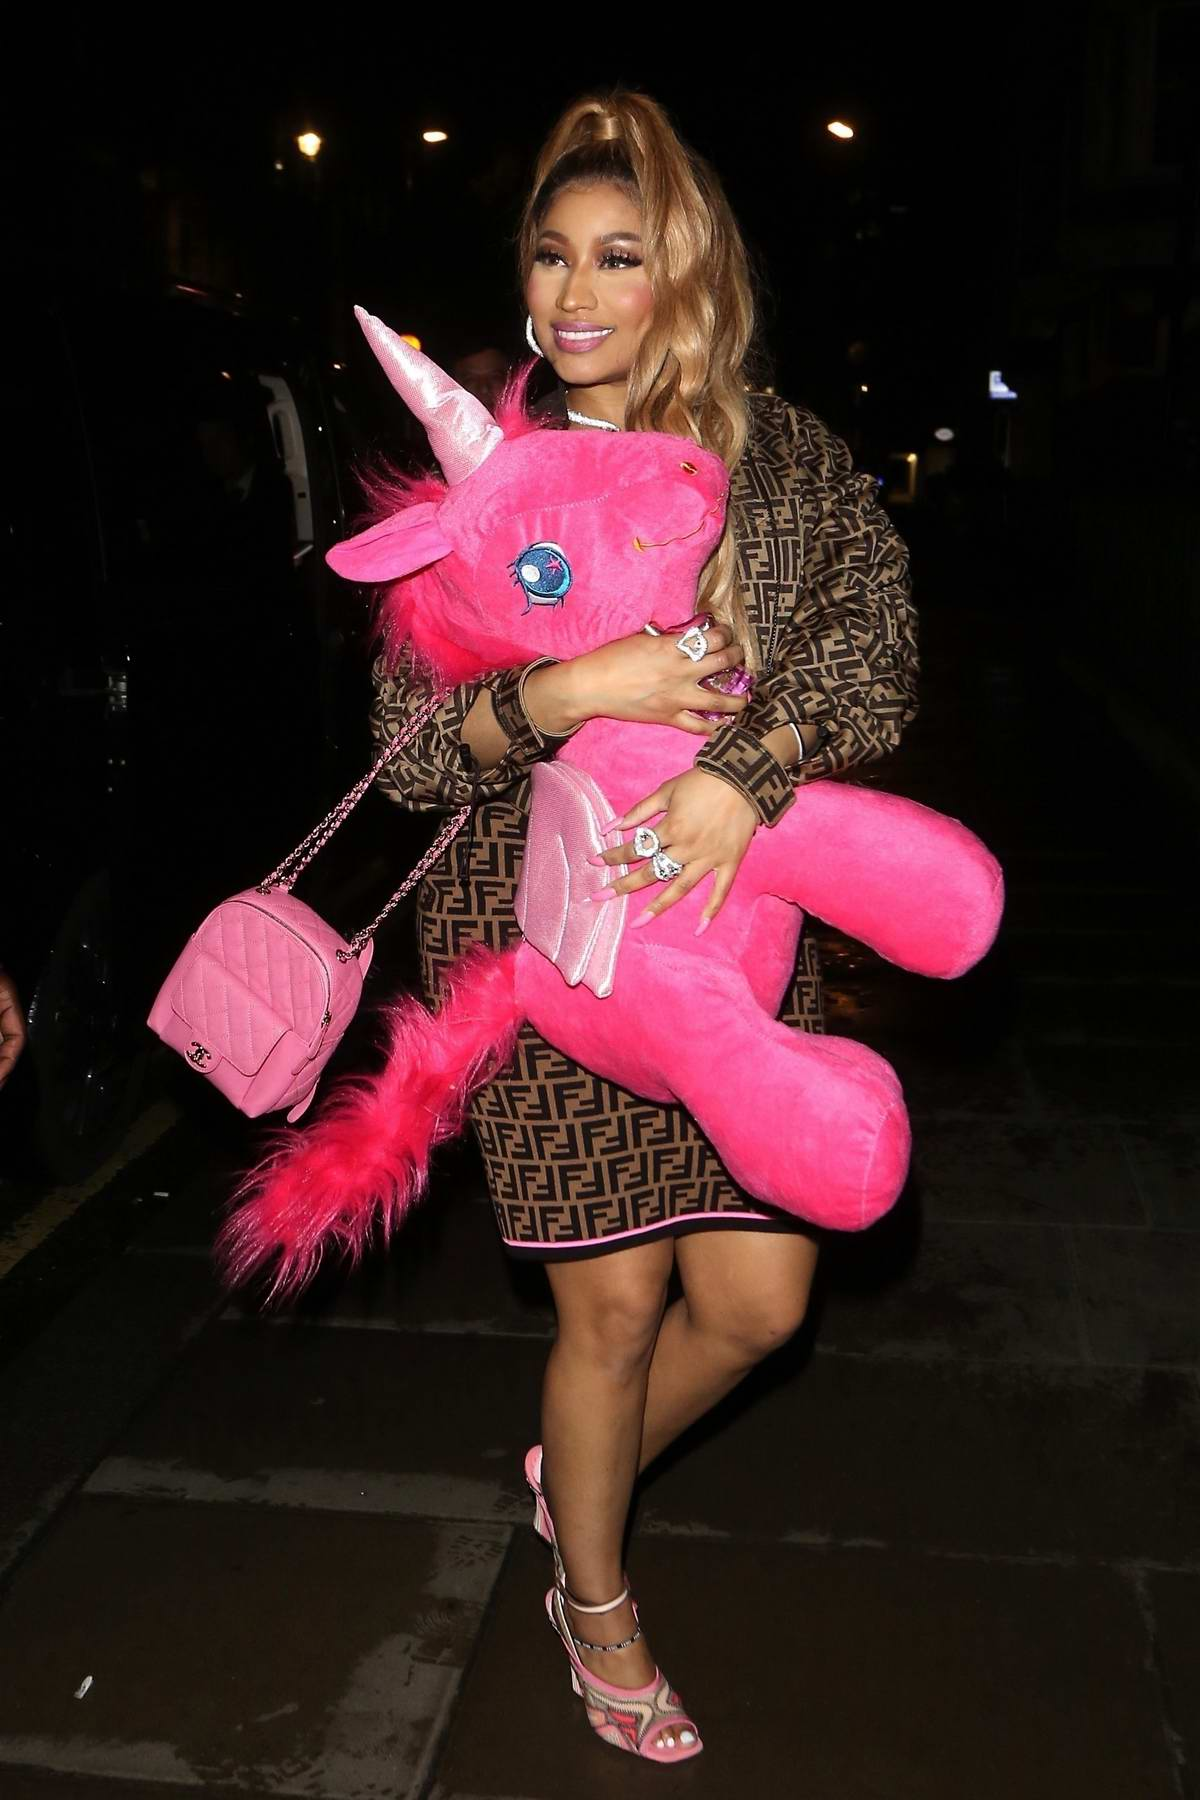 Nicki Minaj rocks a Fendi dress and a pink unicorn as she leaves Opium nightclub in London, UK